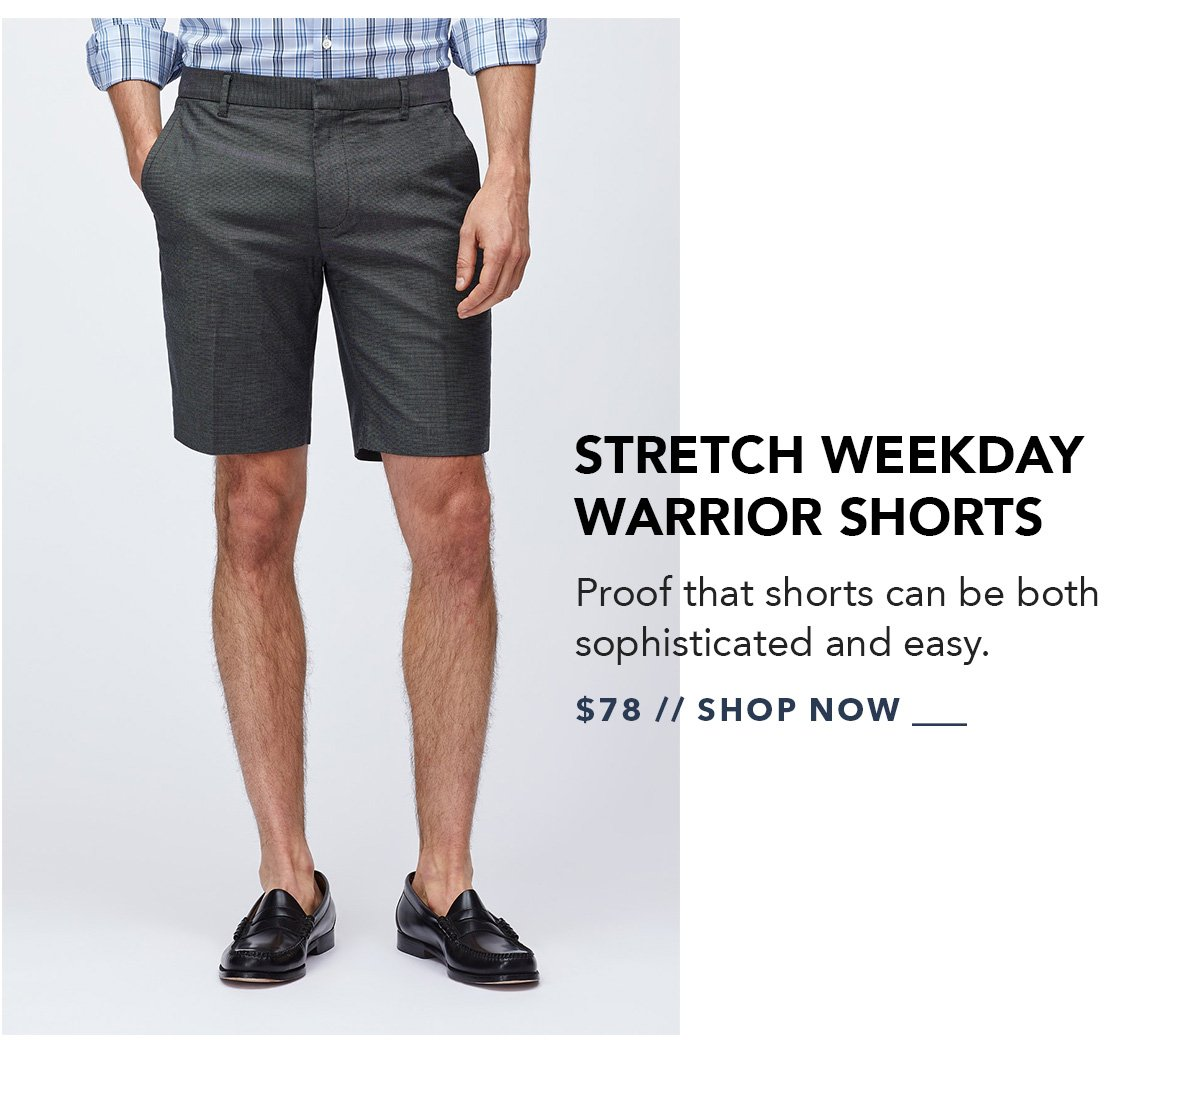 Stretch Weekday Warrior Shorts: Proof that shorts can be both sophisticated and easy. Available in up to 2 lengths and 4 colors.